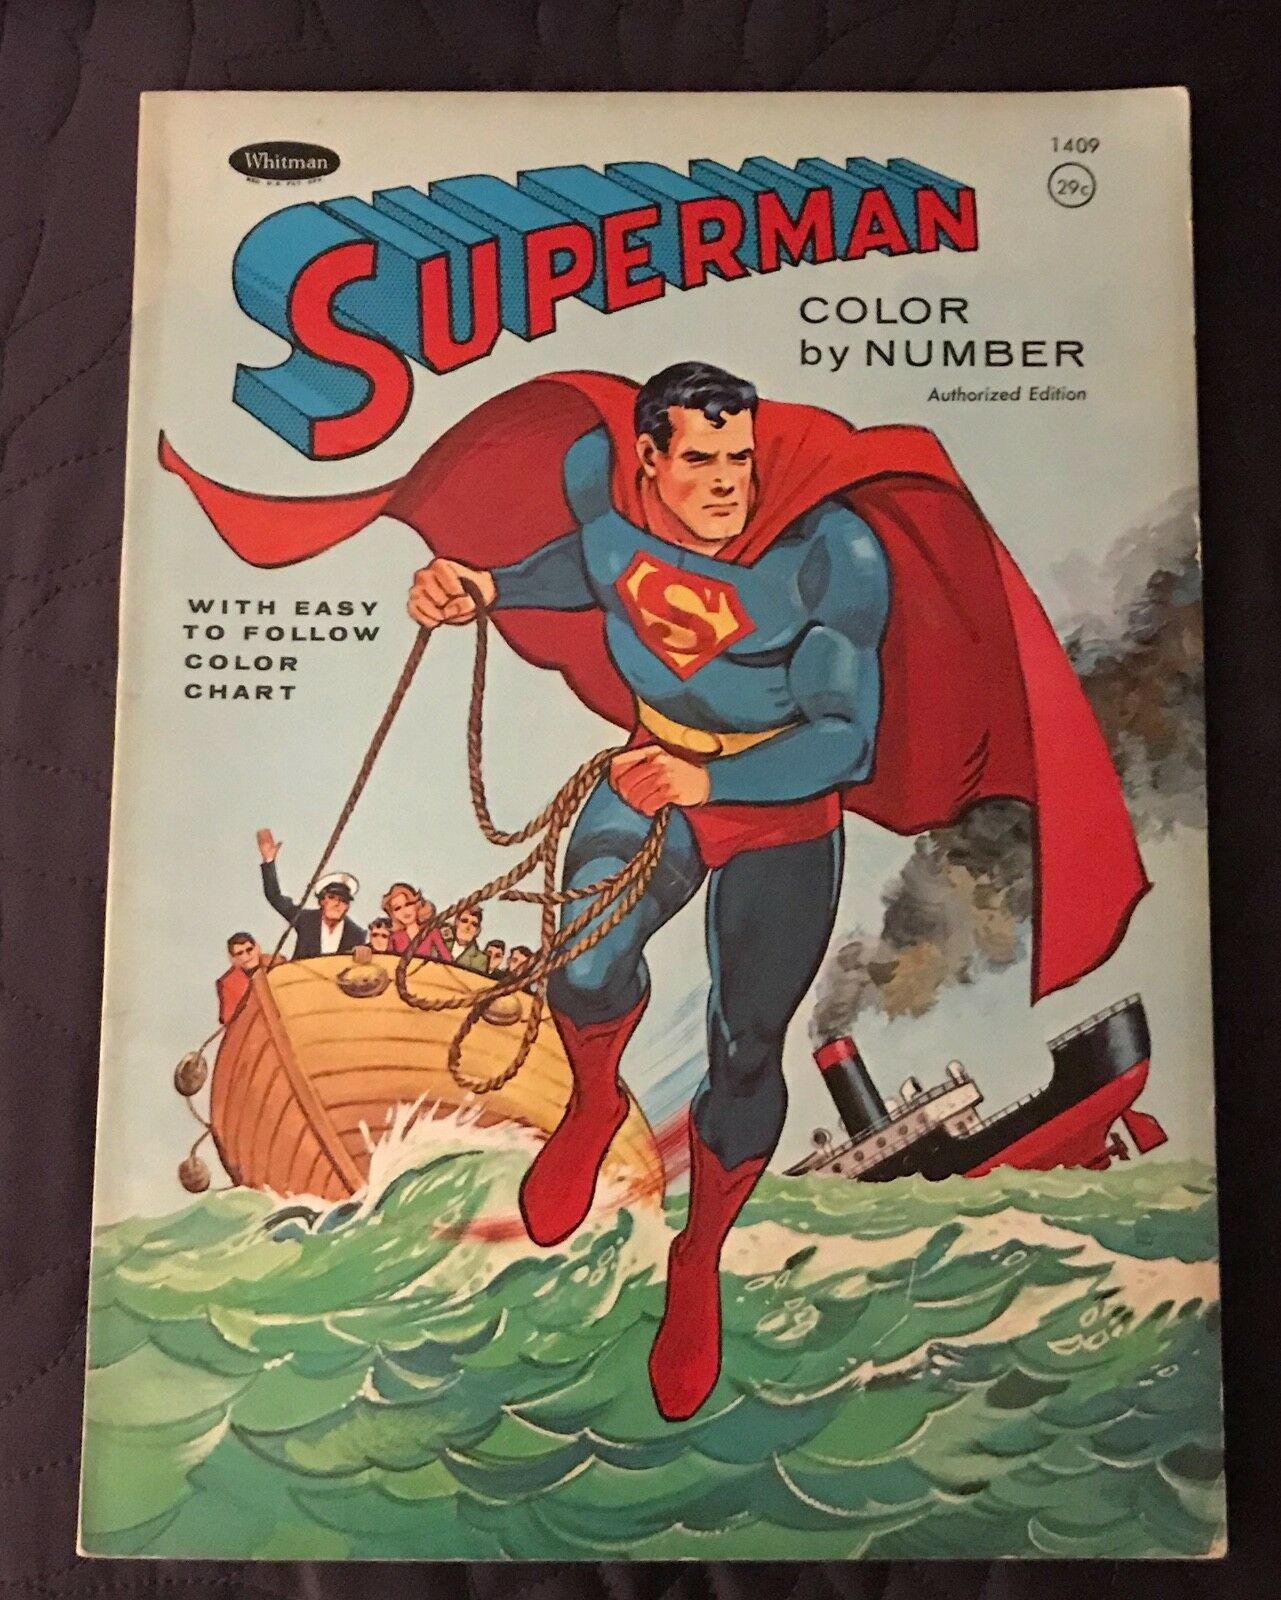 Whitman súperman Color por número 1966 1409 sin usar Dc Comics